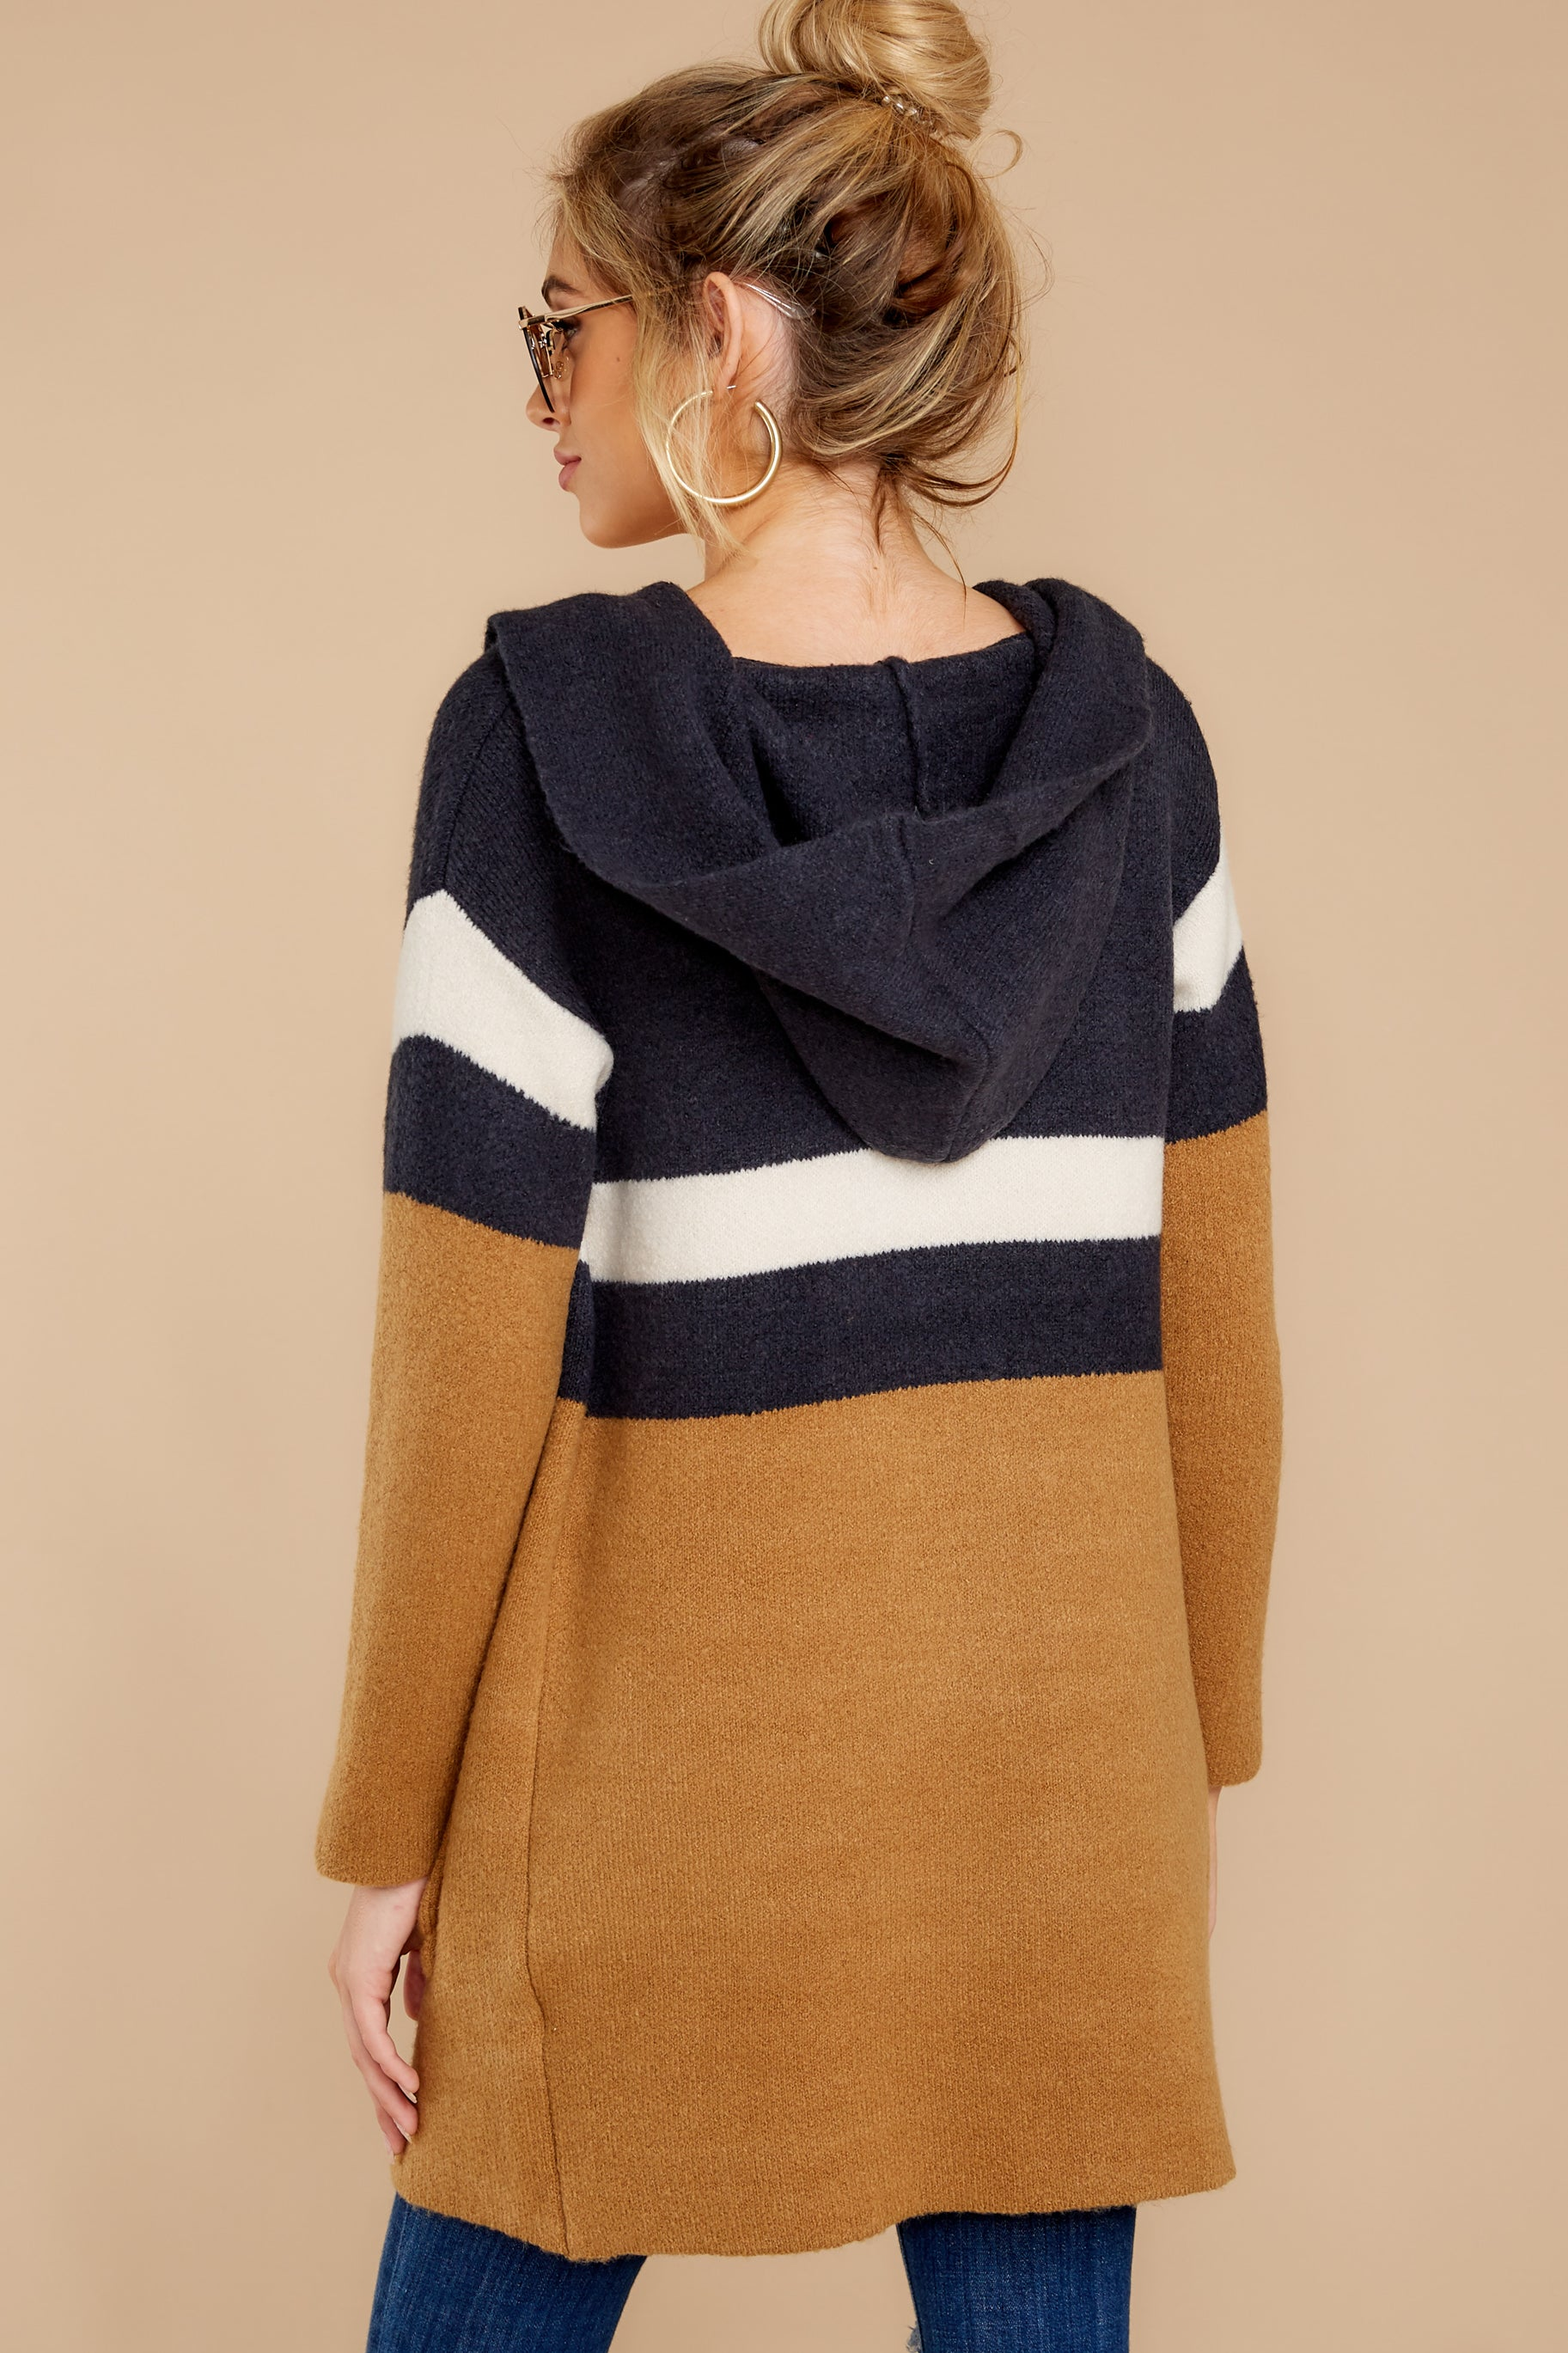 8 Early Morning Camel And Navy Striped Cardigan at reddress.com